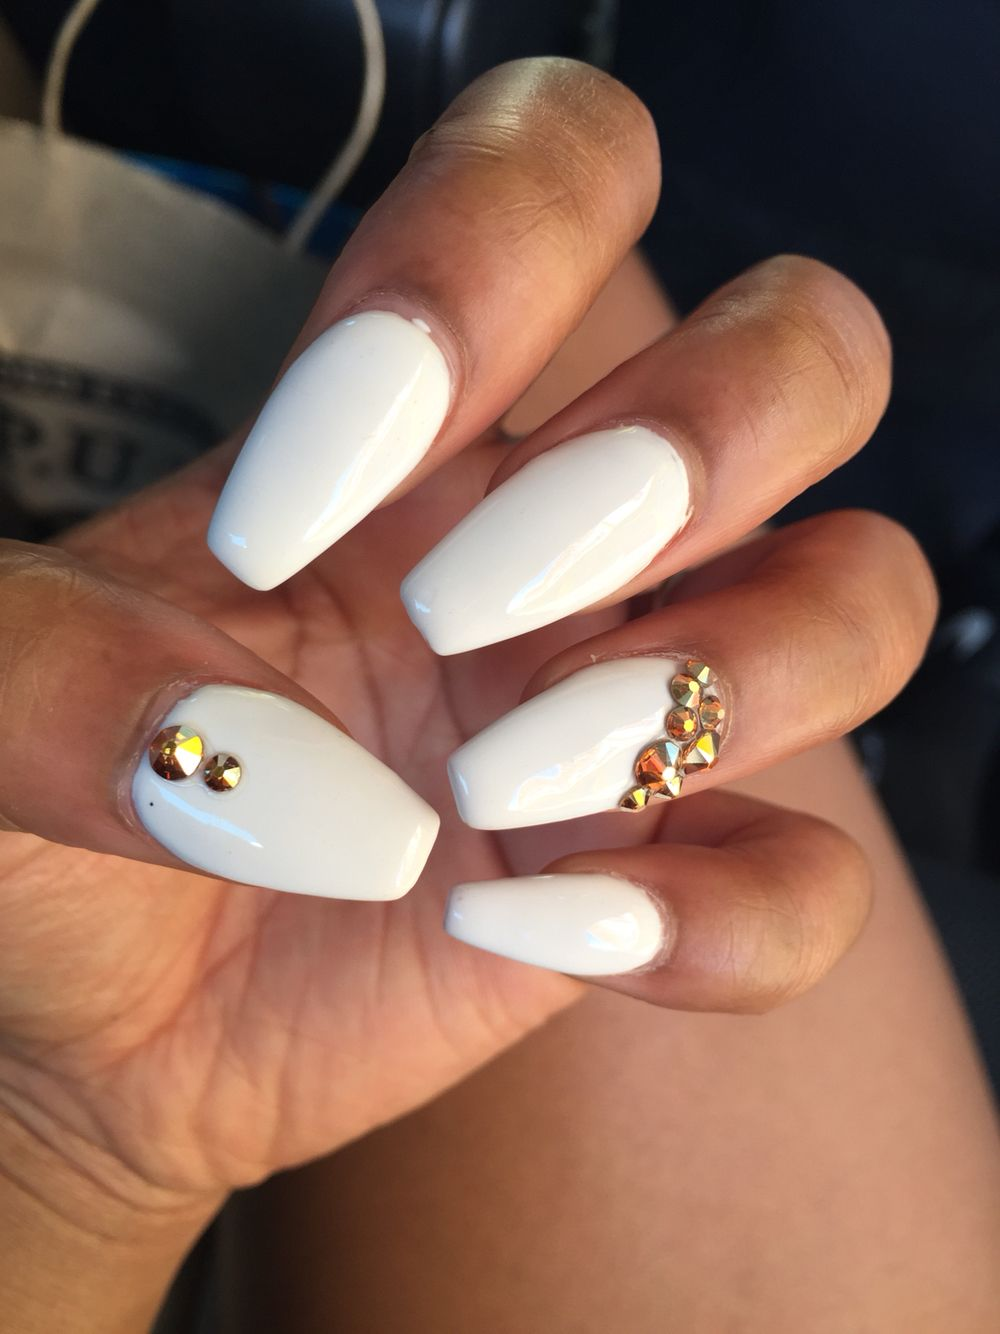 White Acrylic Coffin Nails With Gold Jewels Gold Nails White Nails Nails